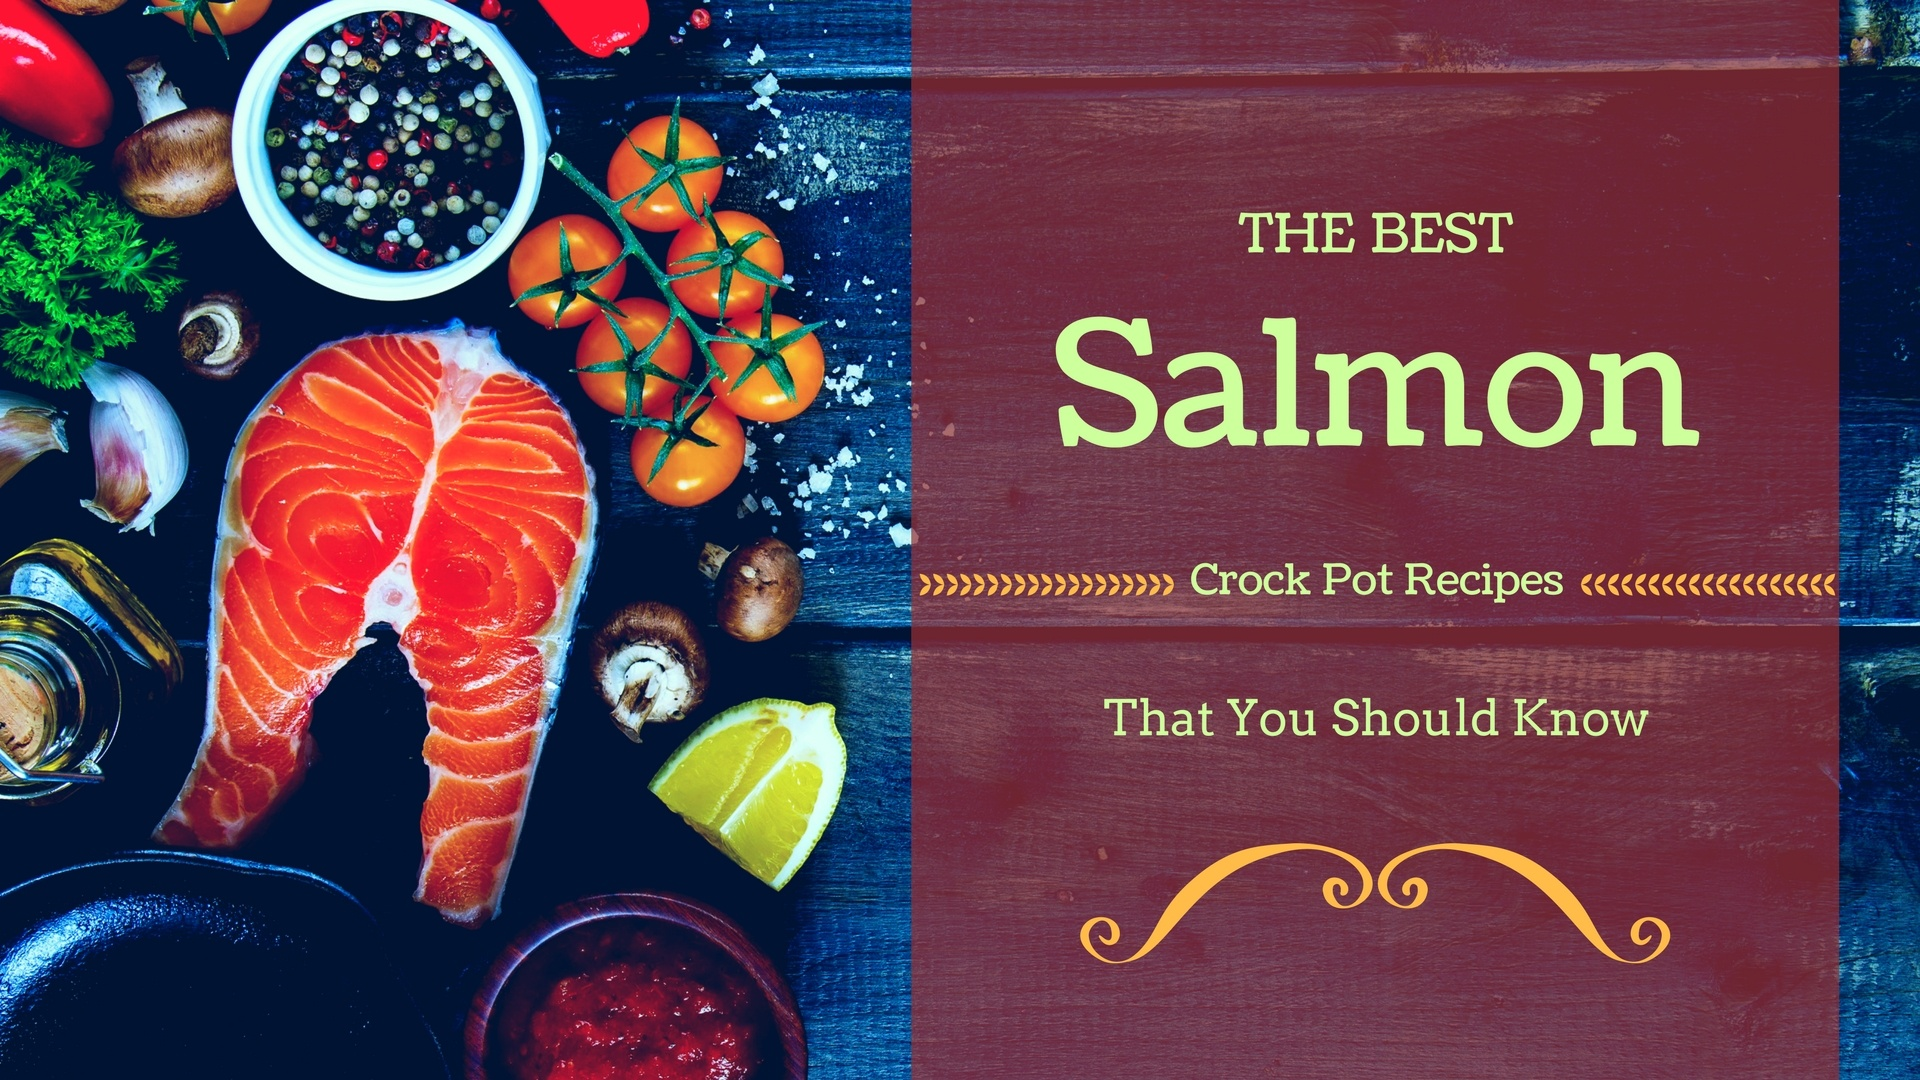 Salmon crock pot recipes